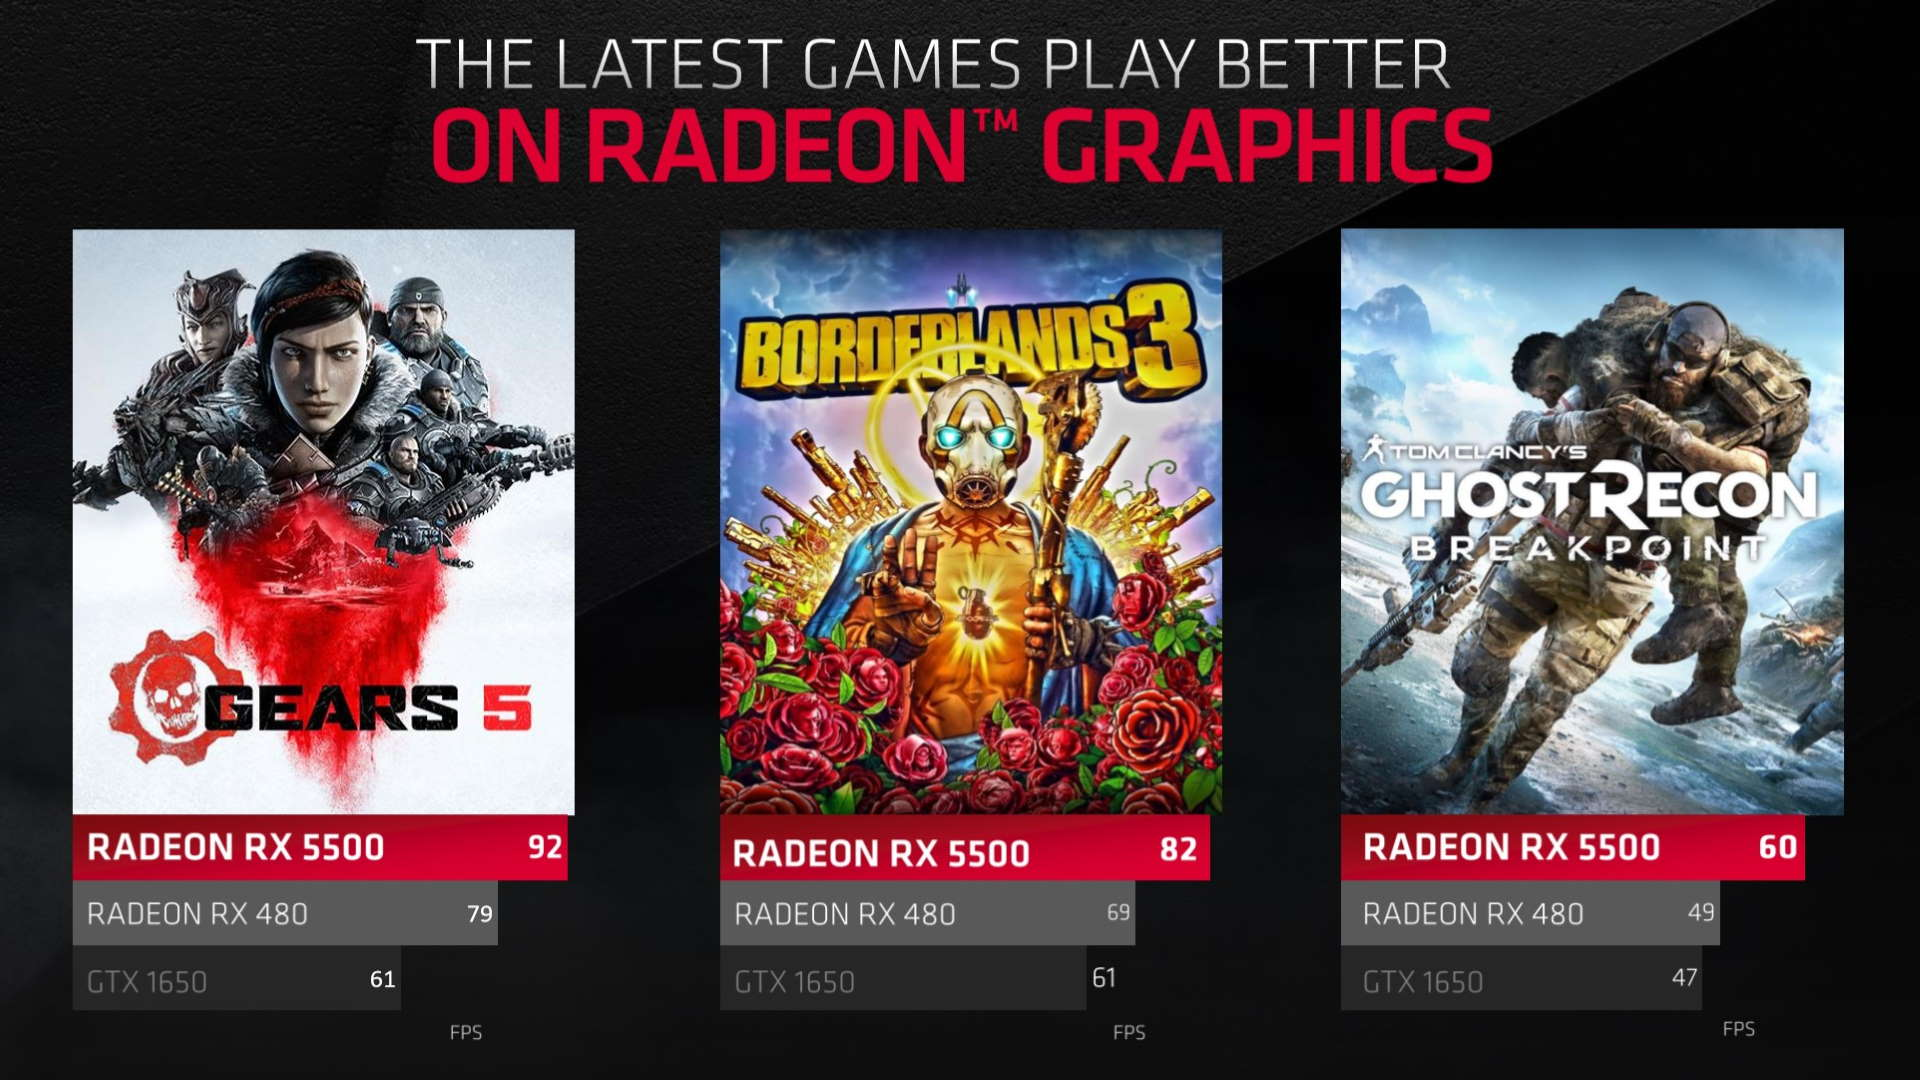 AMD introduces Radeon RX 5500 series for 'high-fidelity gaming at 1080p'